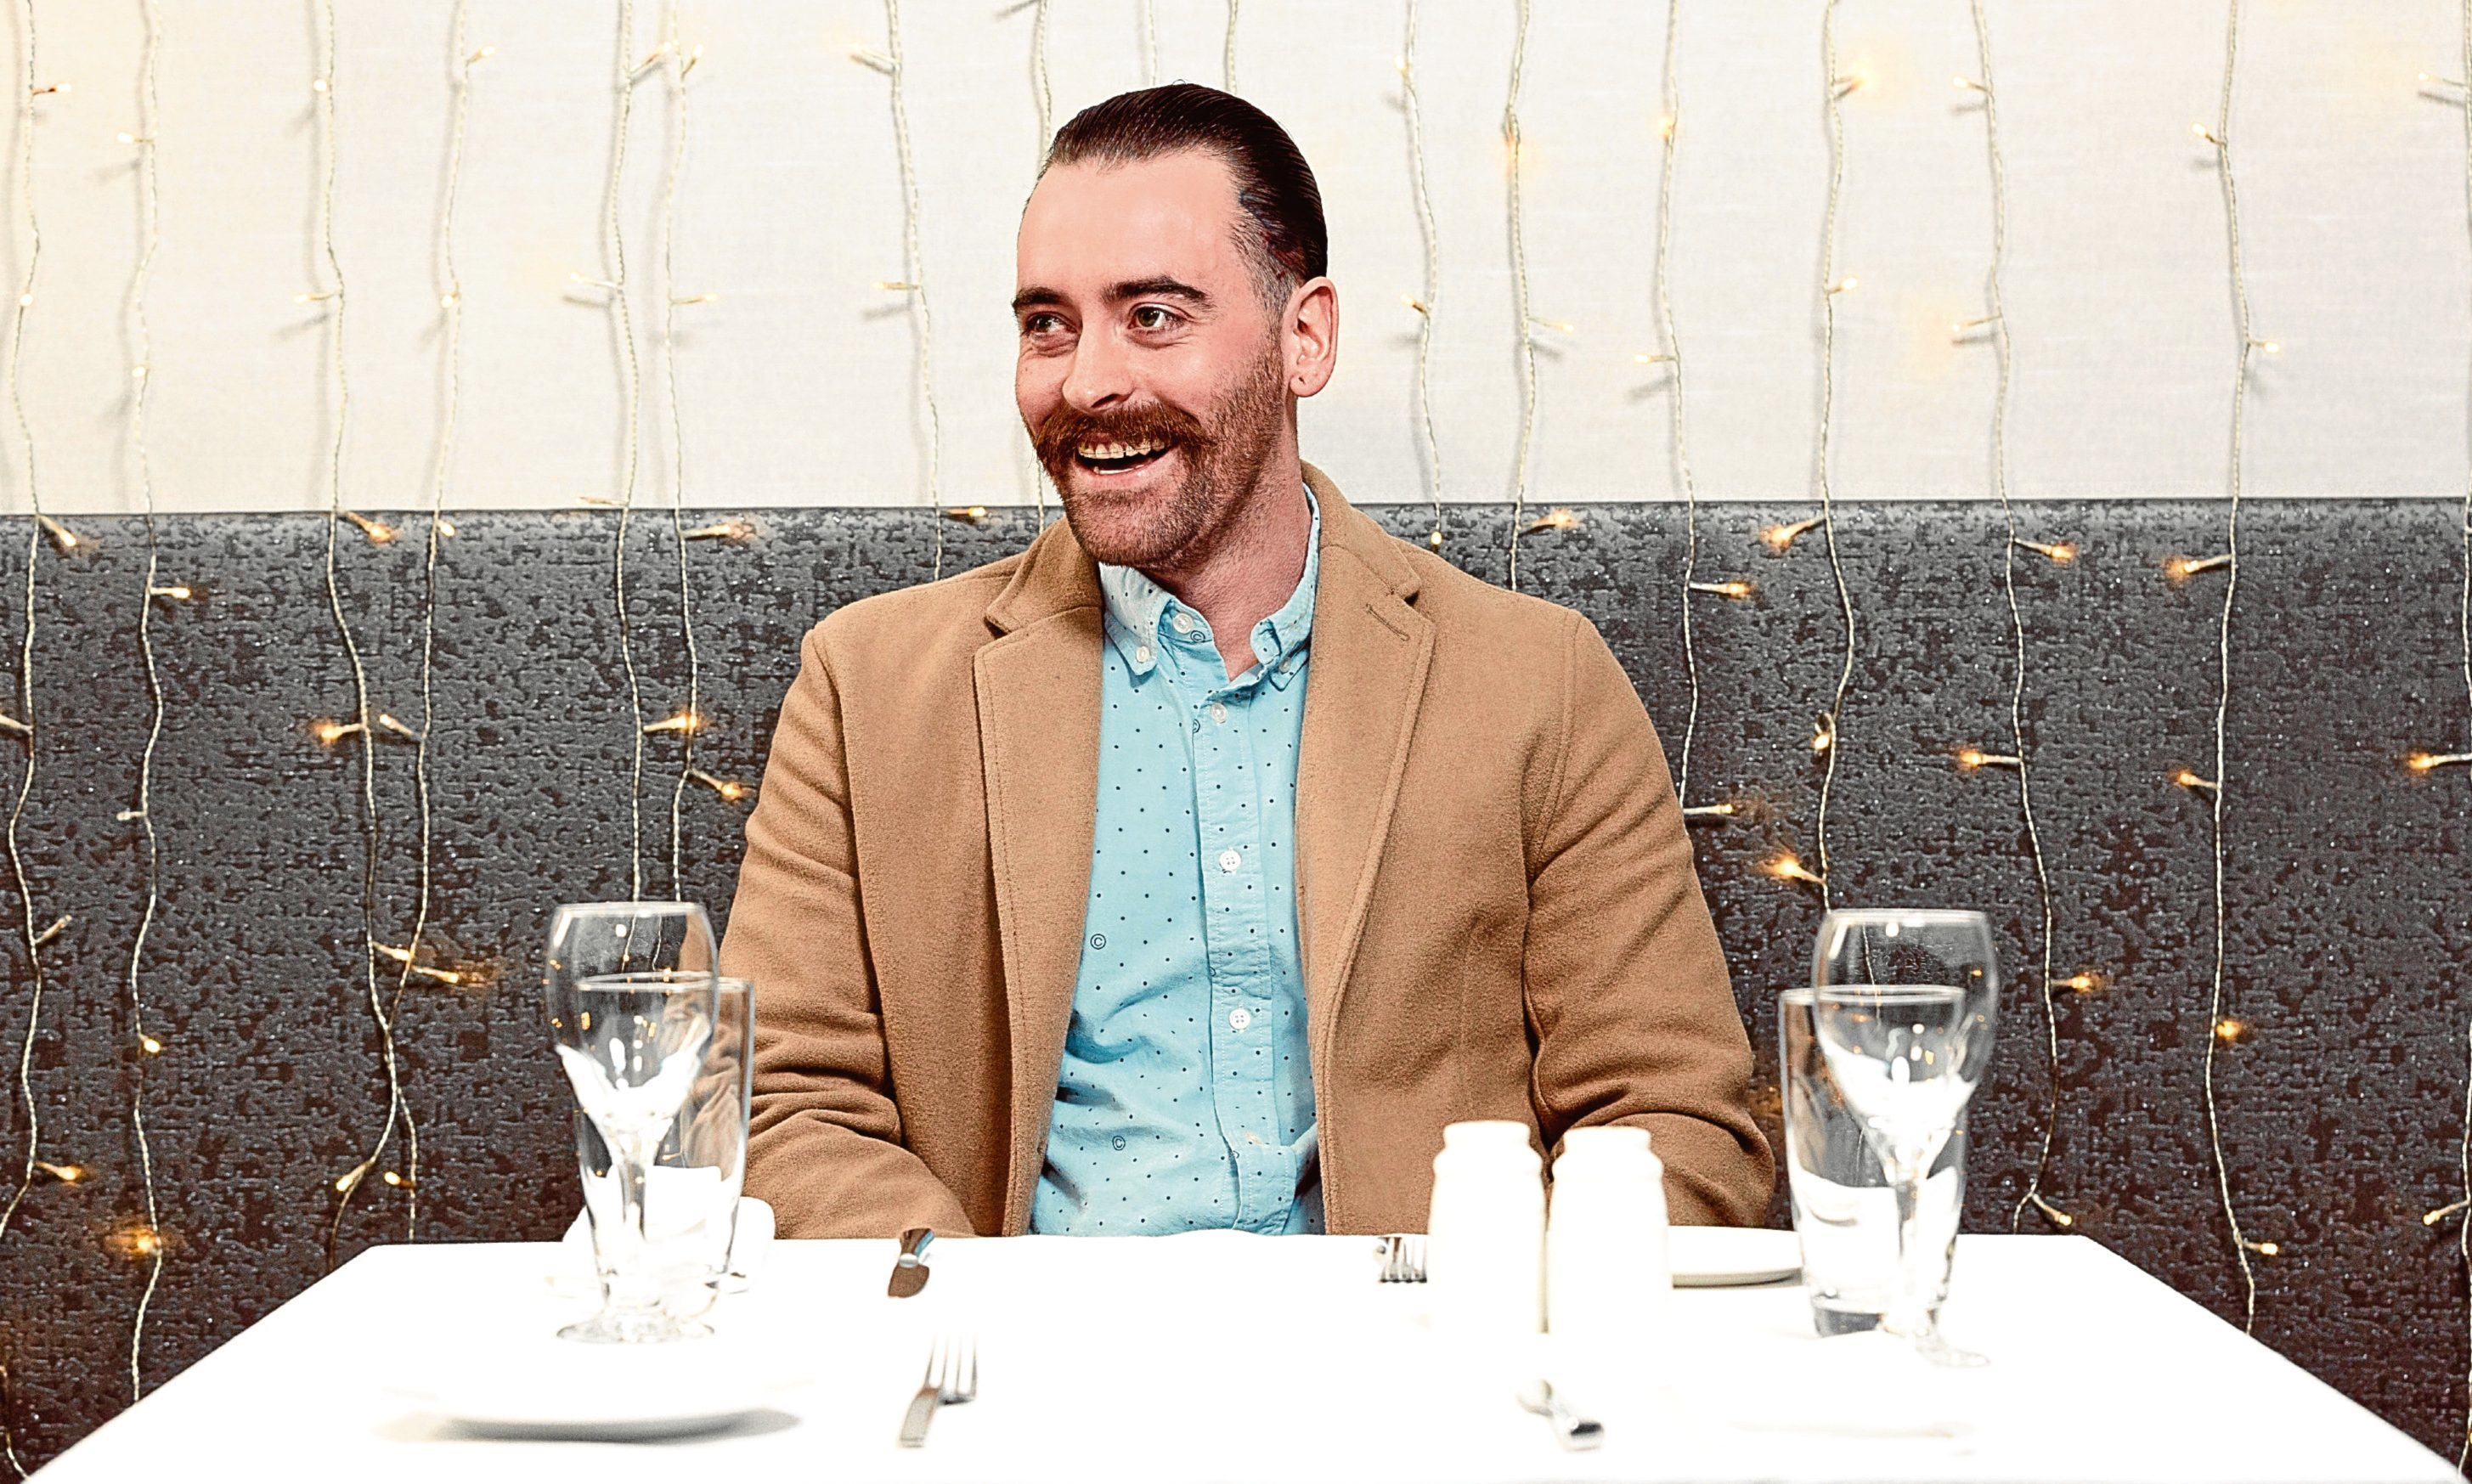 Martin, otherwise known as Eugene Thunder, appearing on First Dates. Photo courtesy of Hollow Creative.